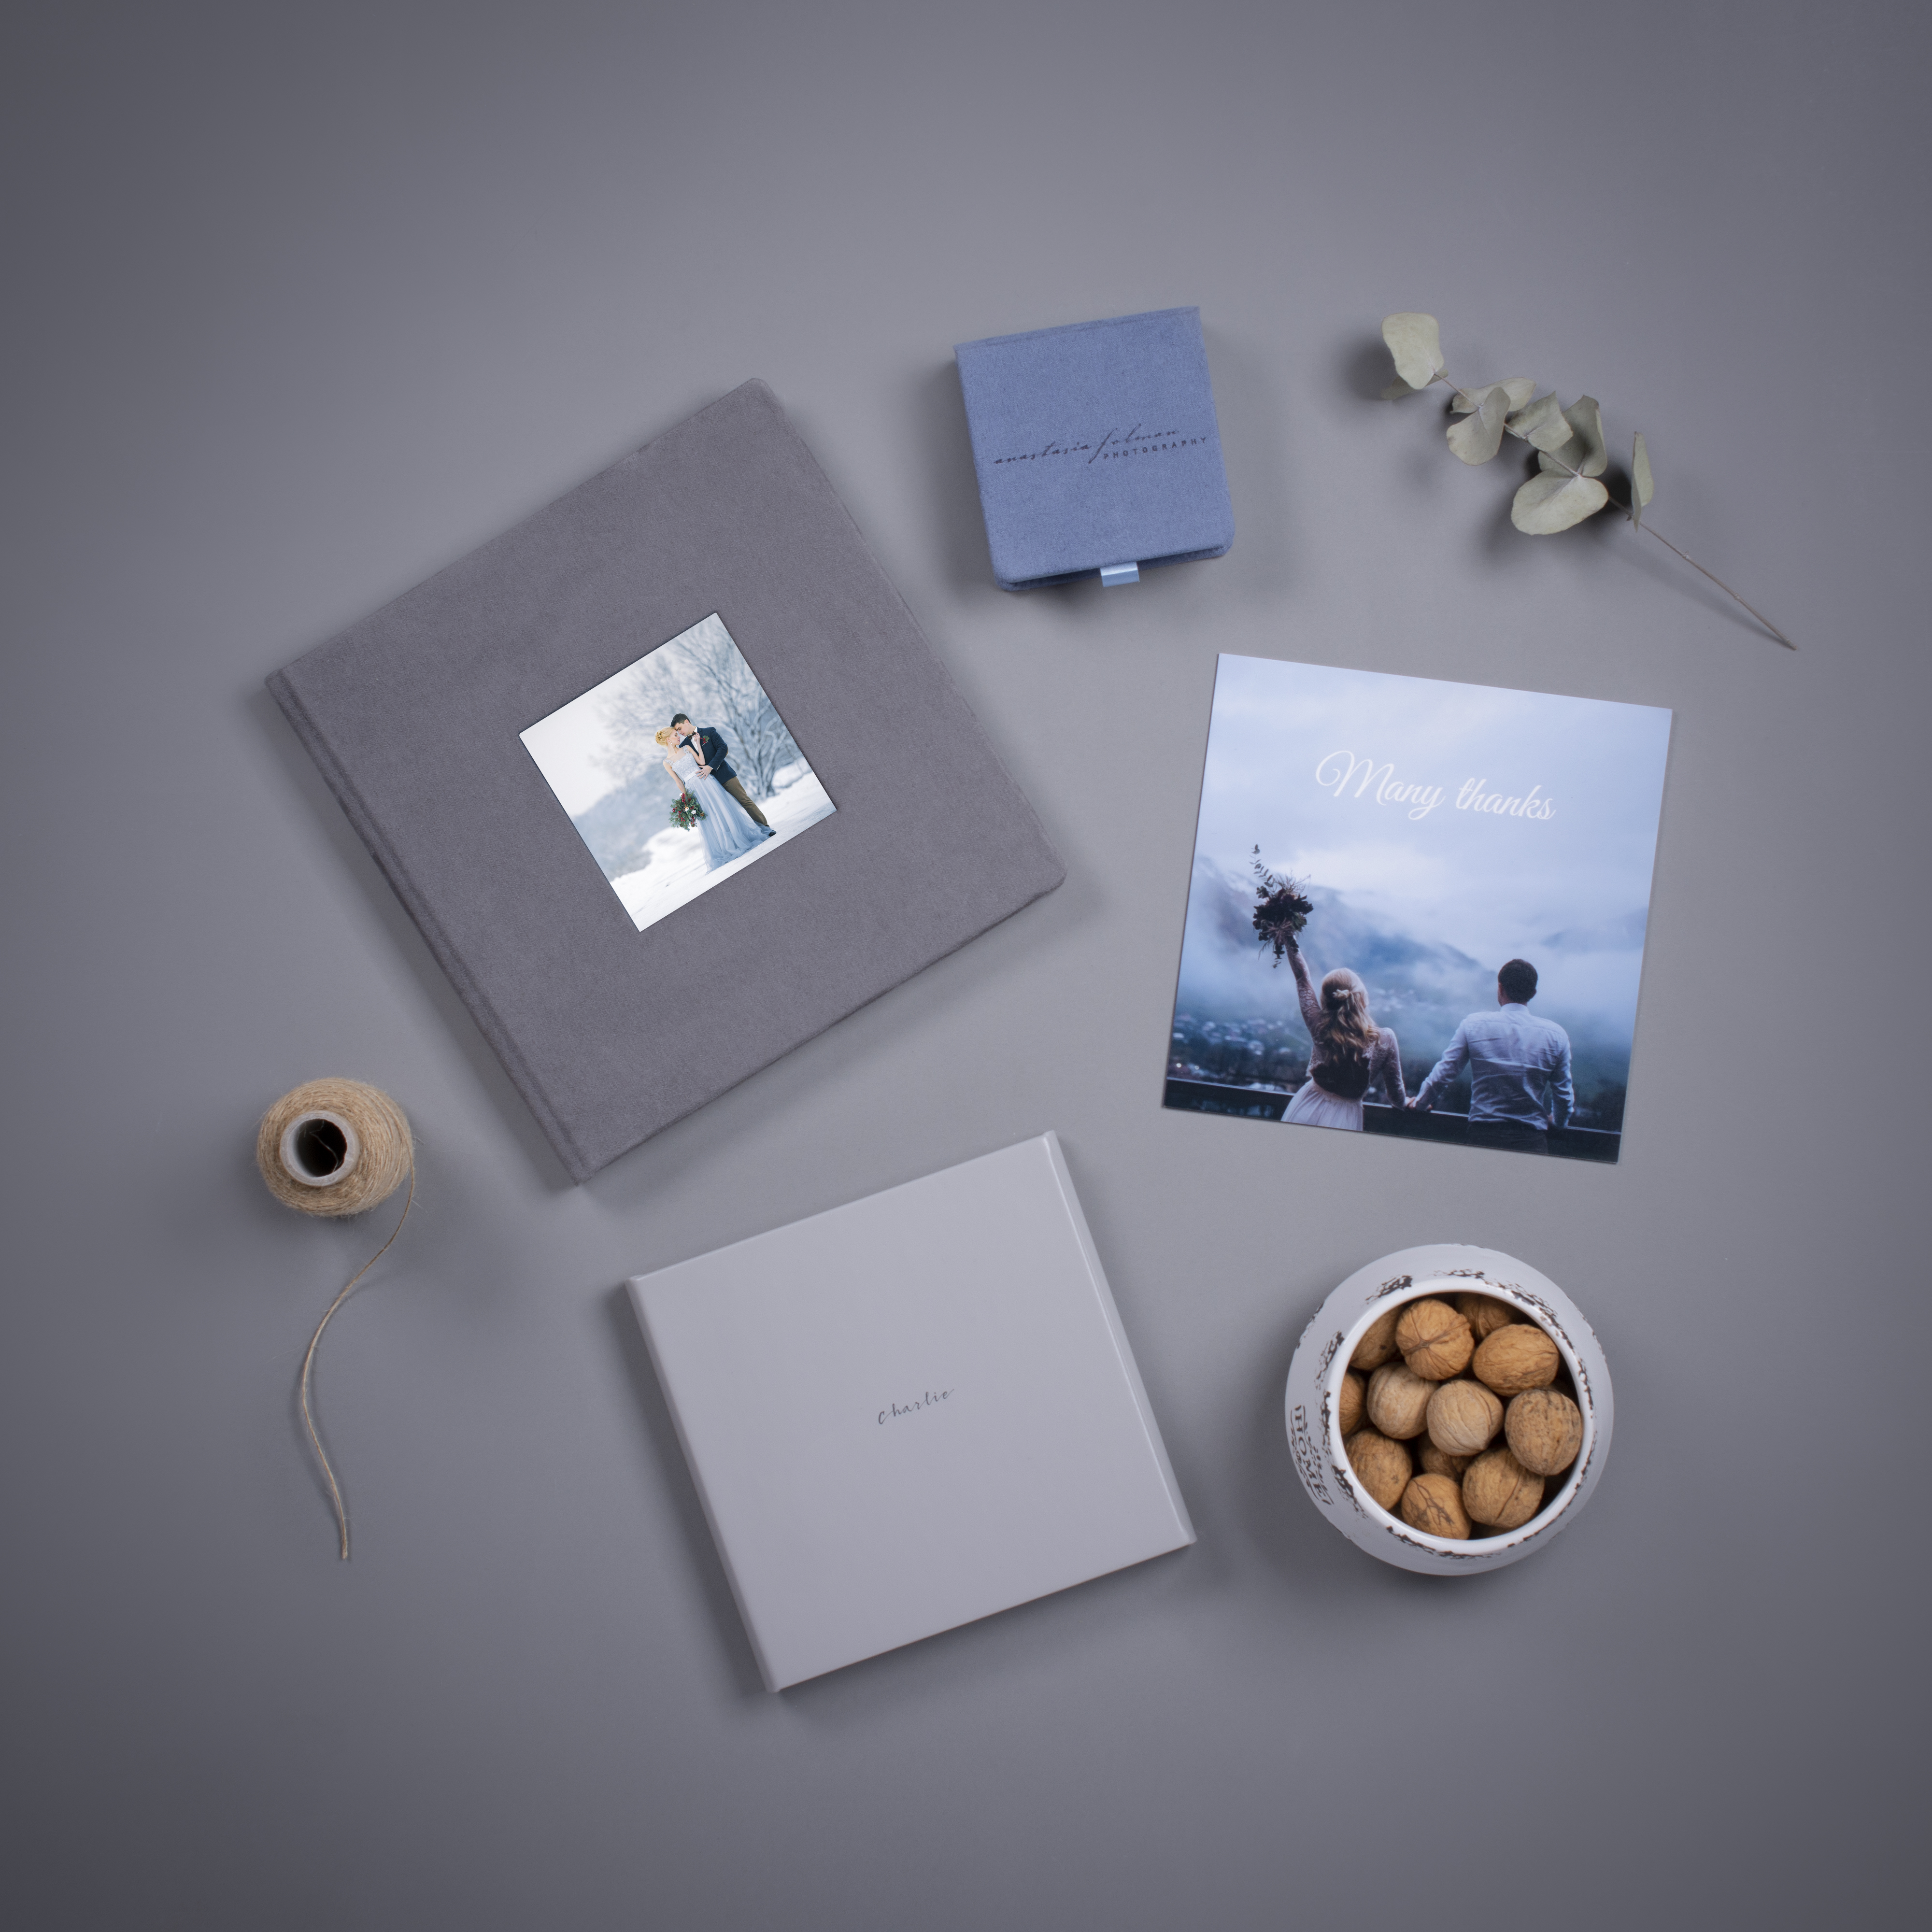 Inspirational professional wedding photography products.